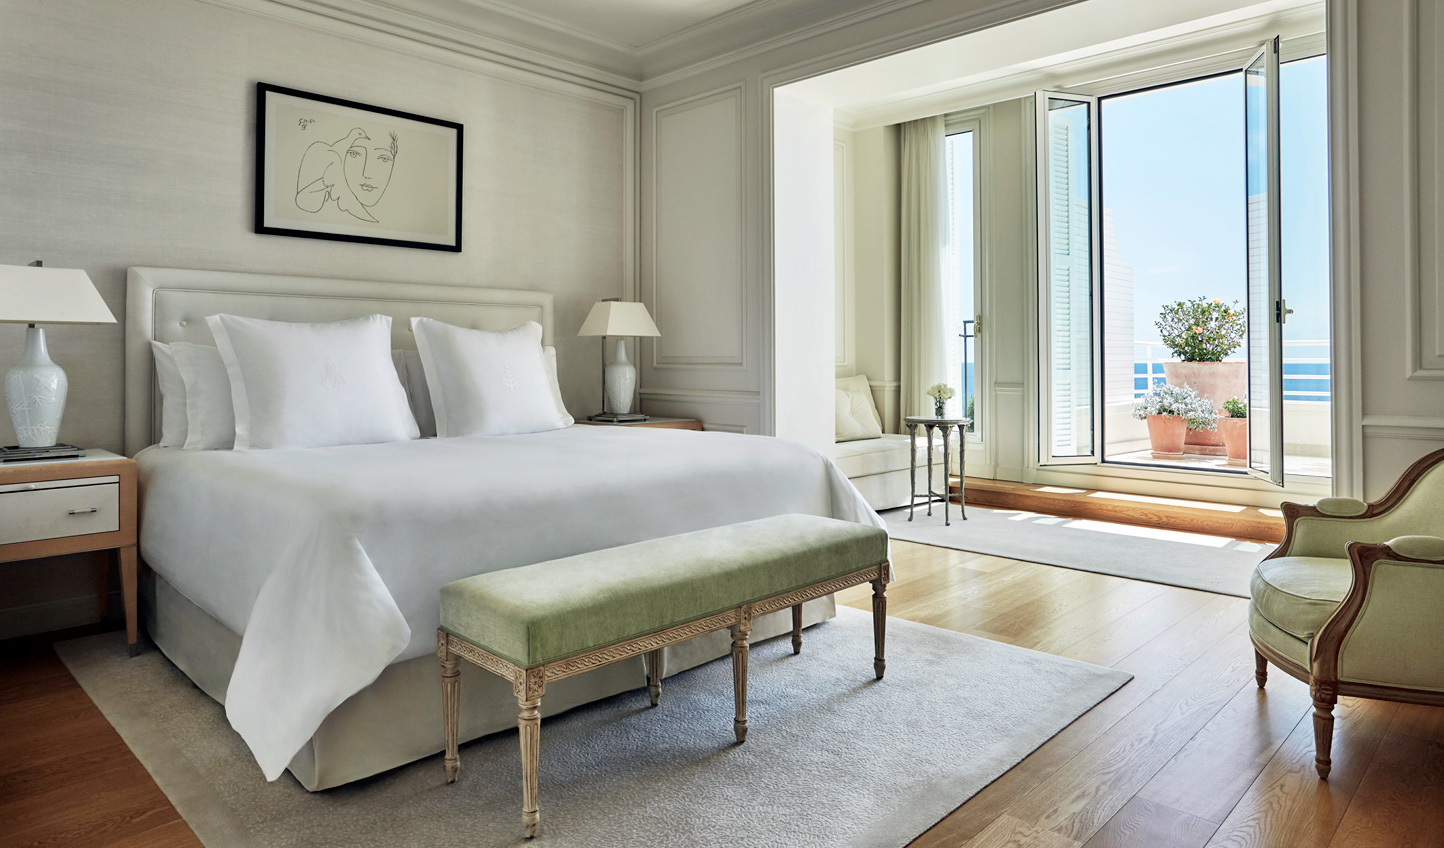 Elegant rooms designed by Pierre-Yves Rochon